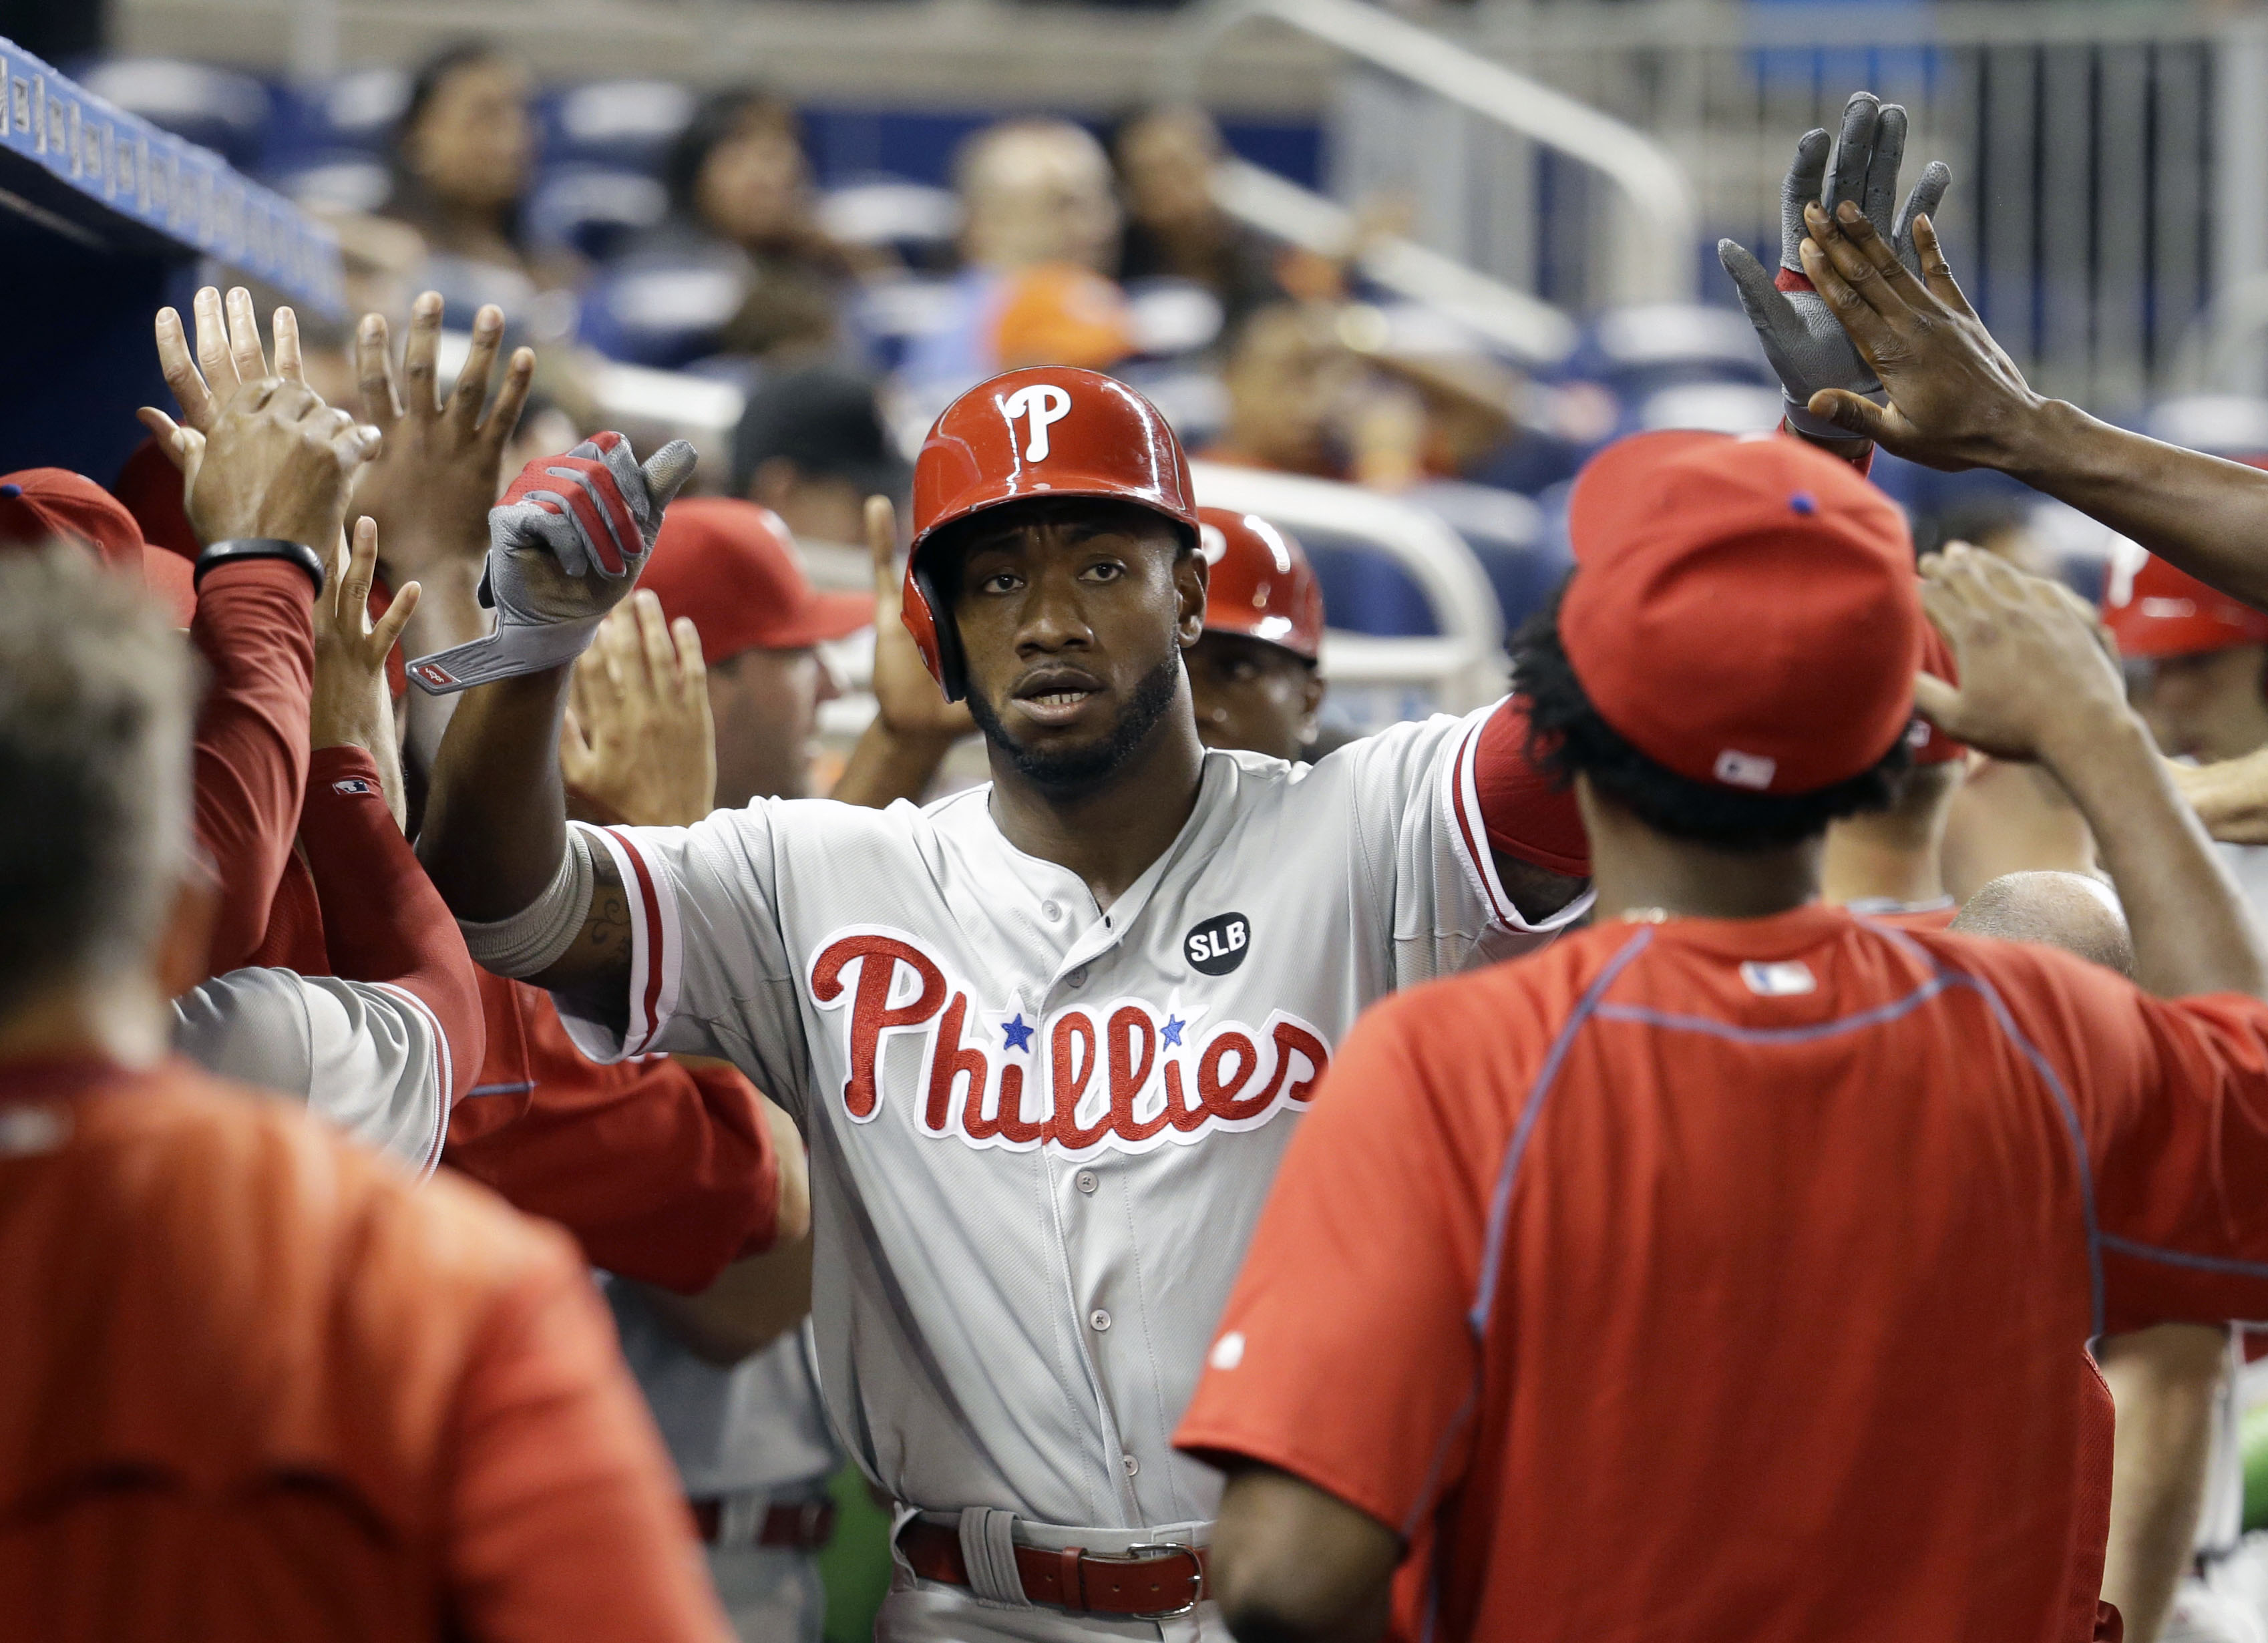 Philadelphia Phillies' Domonic Brown is congratulated in the dugout after scoring on a single hit by Jerad Eickhoff in the fourth inning  of a baseball game against the Miami Marlins, Friday, Aug. 21, 2015, in Miami. (AP Photo/Lynne Sladky)